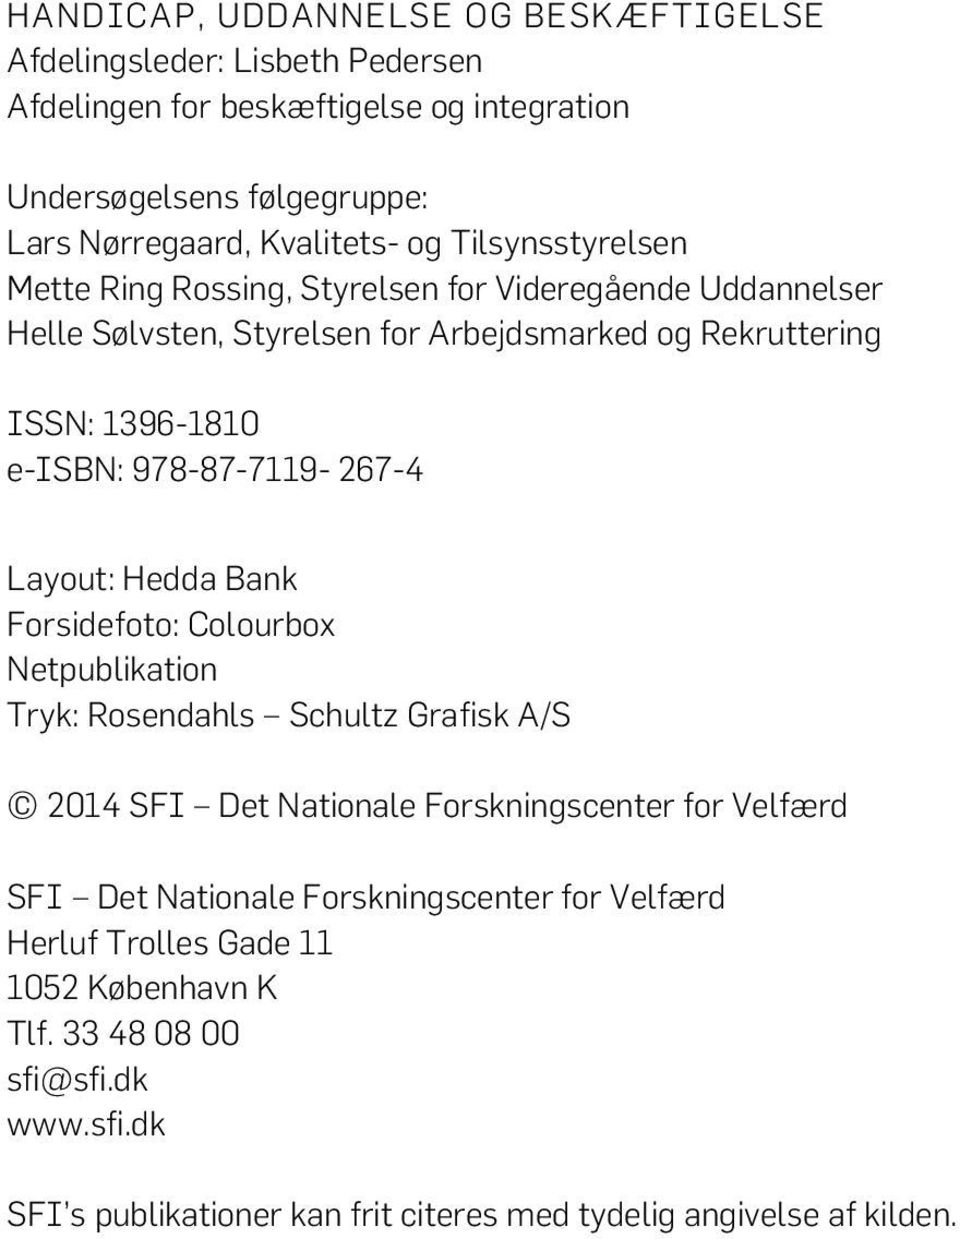 978-87-7119-267-4 Layout: Hedda Bank Forsidefoto: Colourbox Netpublikation Tryk: Rosendahls Schultz Grafisk A/S 2014 SFI Det Nationale Forskningscenter for Velfærd SFI Det